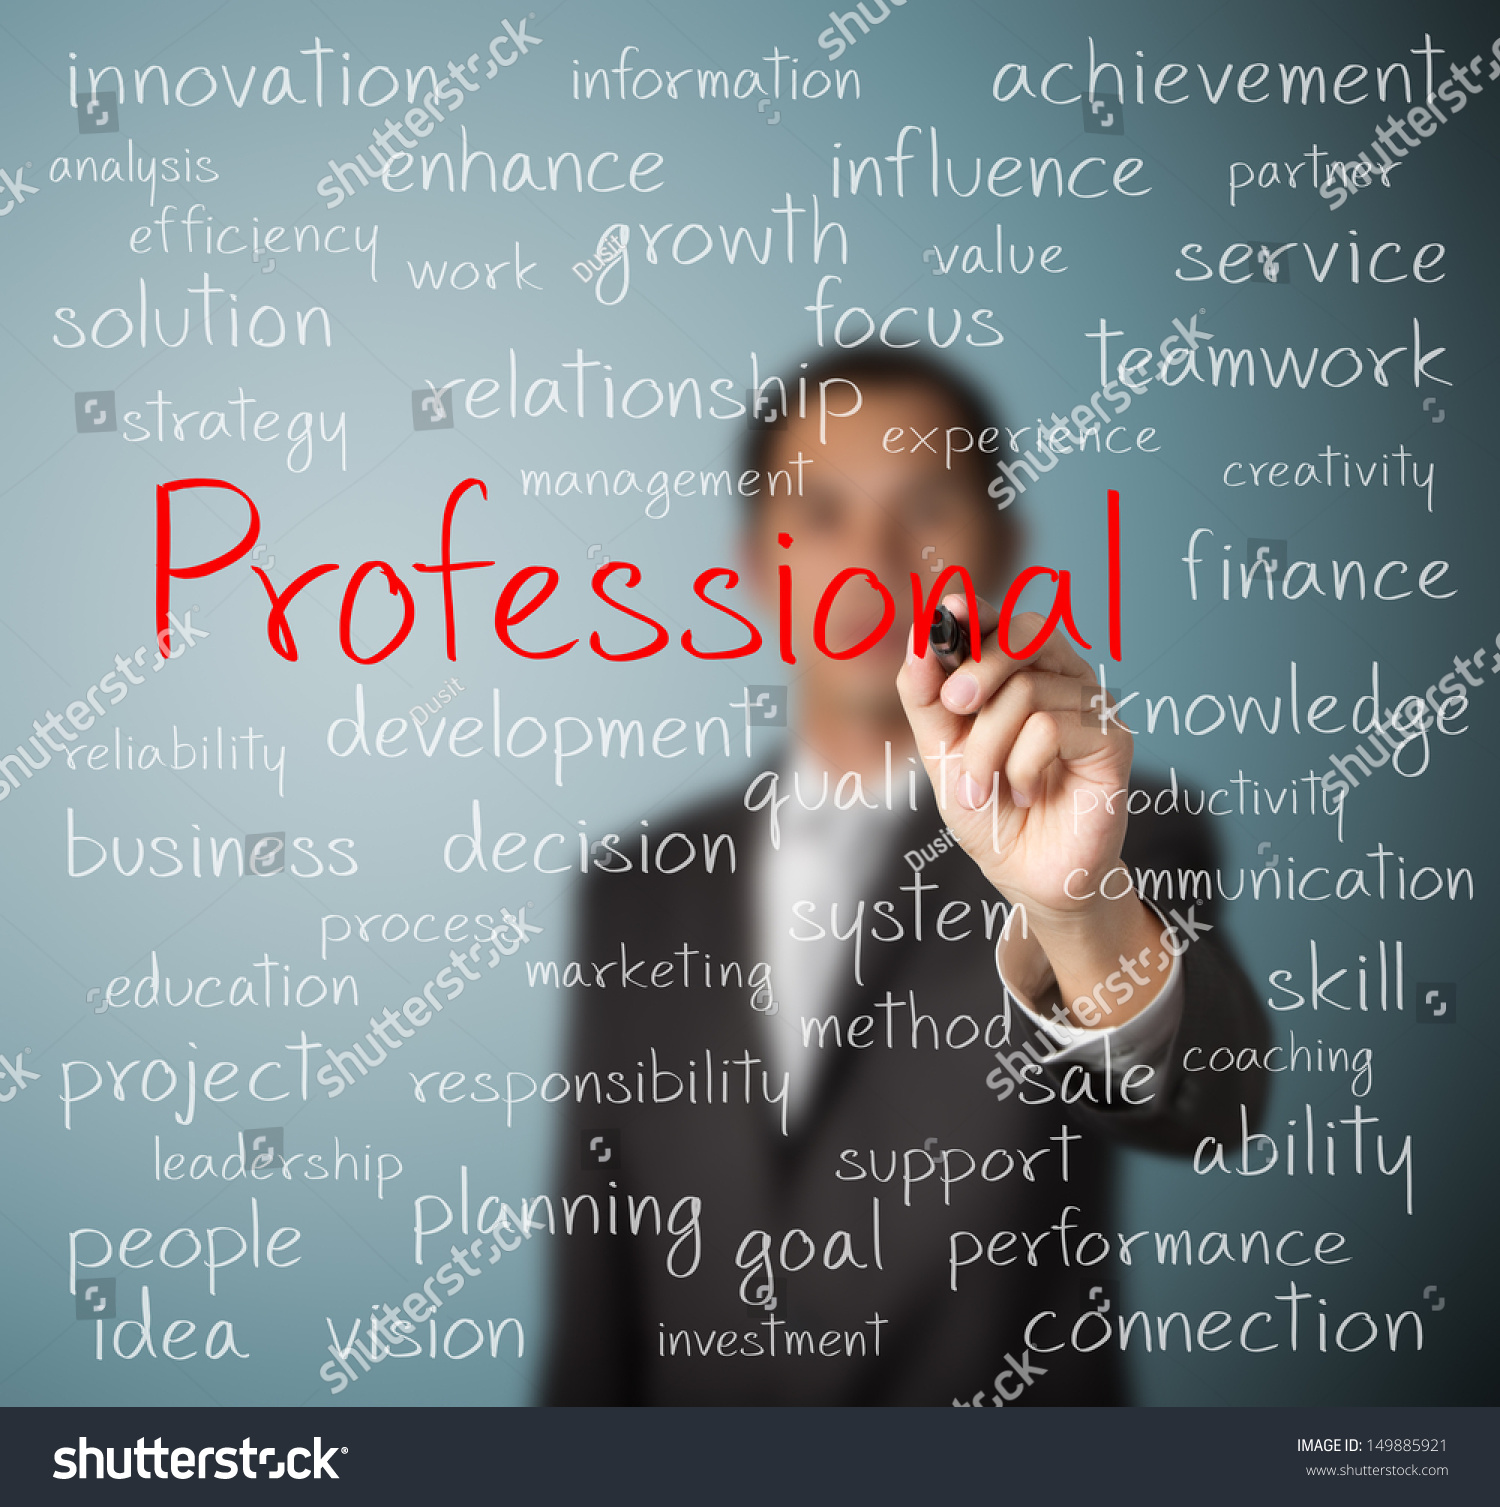 concept of professionalism essay Free professionalism papers, essays, and research papers moving a product from concept to market is very lengthy and expensive for pharmaceutical companies.